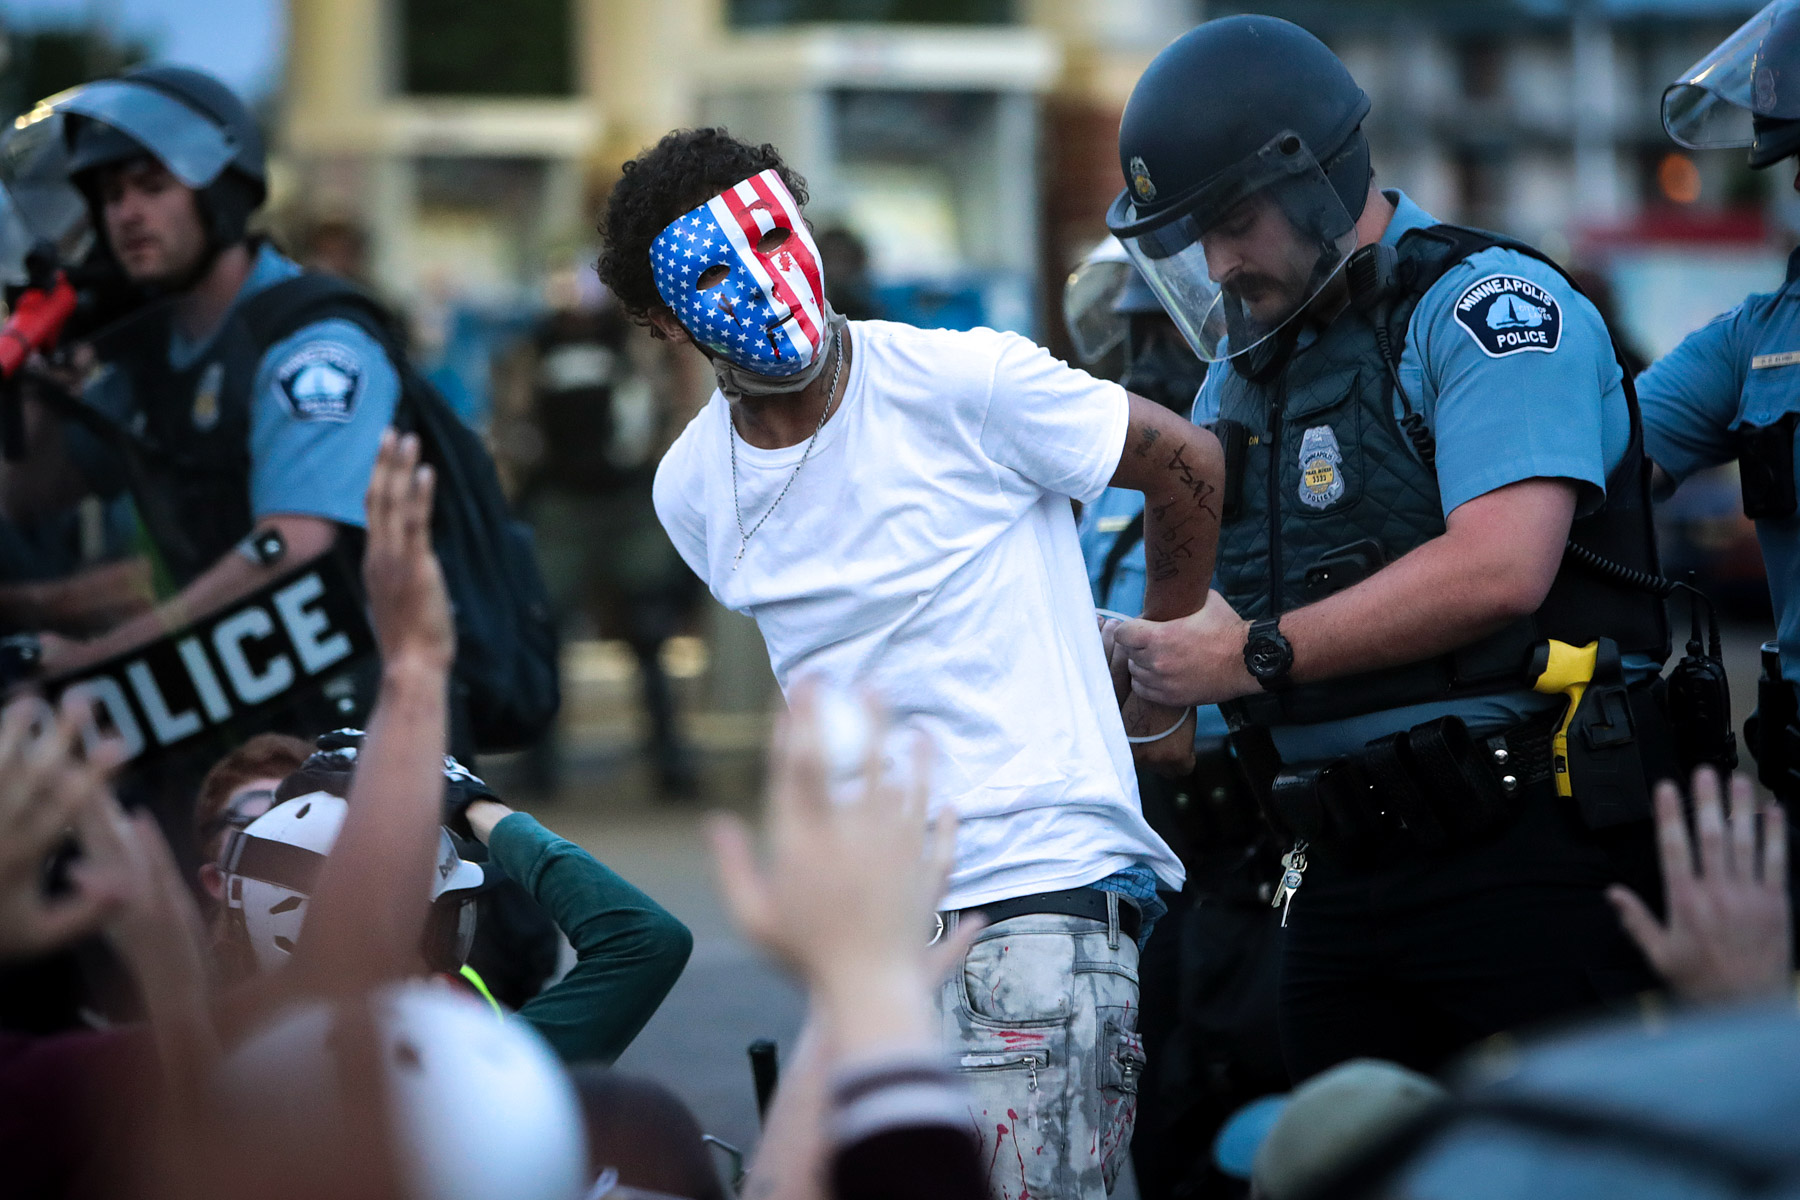 31 May 2020: A demonstrator is arrested during a protest against police brutality in Minneapolis, Minnesota, where George Floyd was killed. Protests continue in cities throughout the country. (Photograph by Scott Olson/ Getty Images)